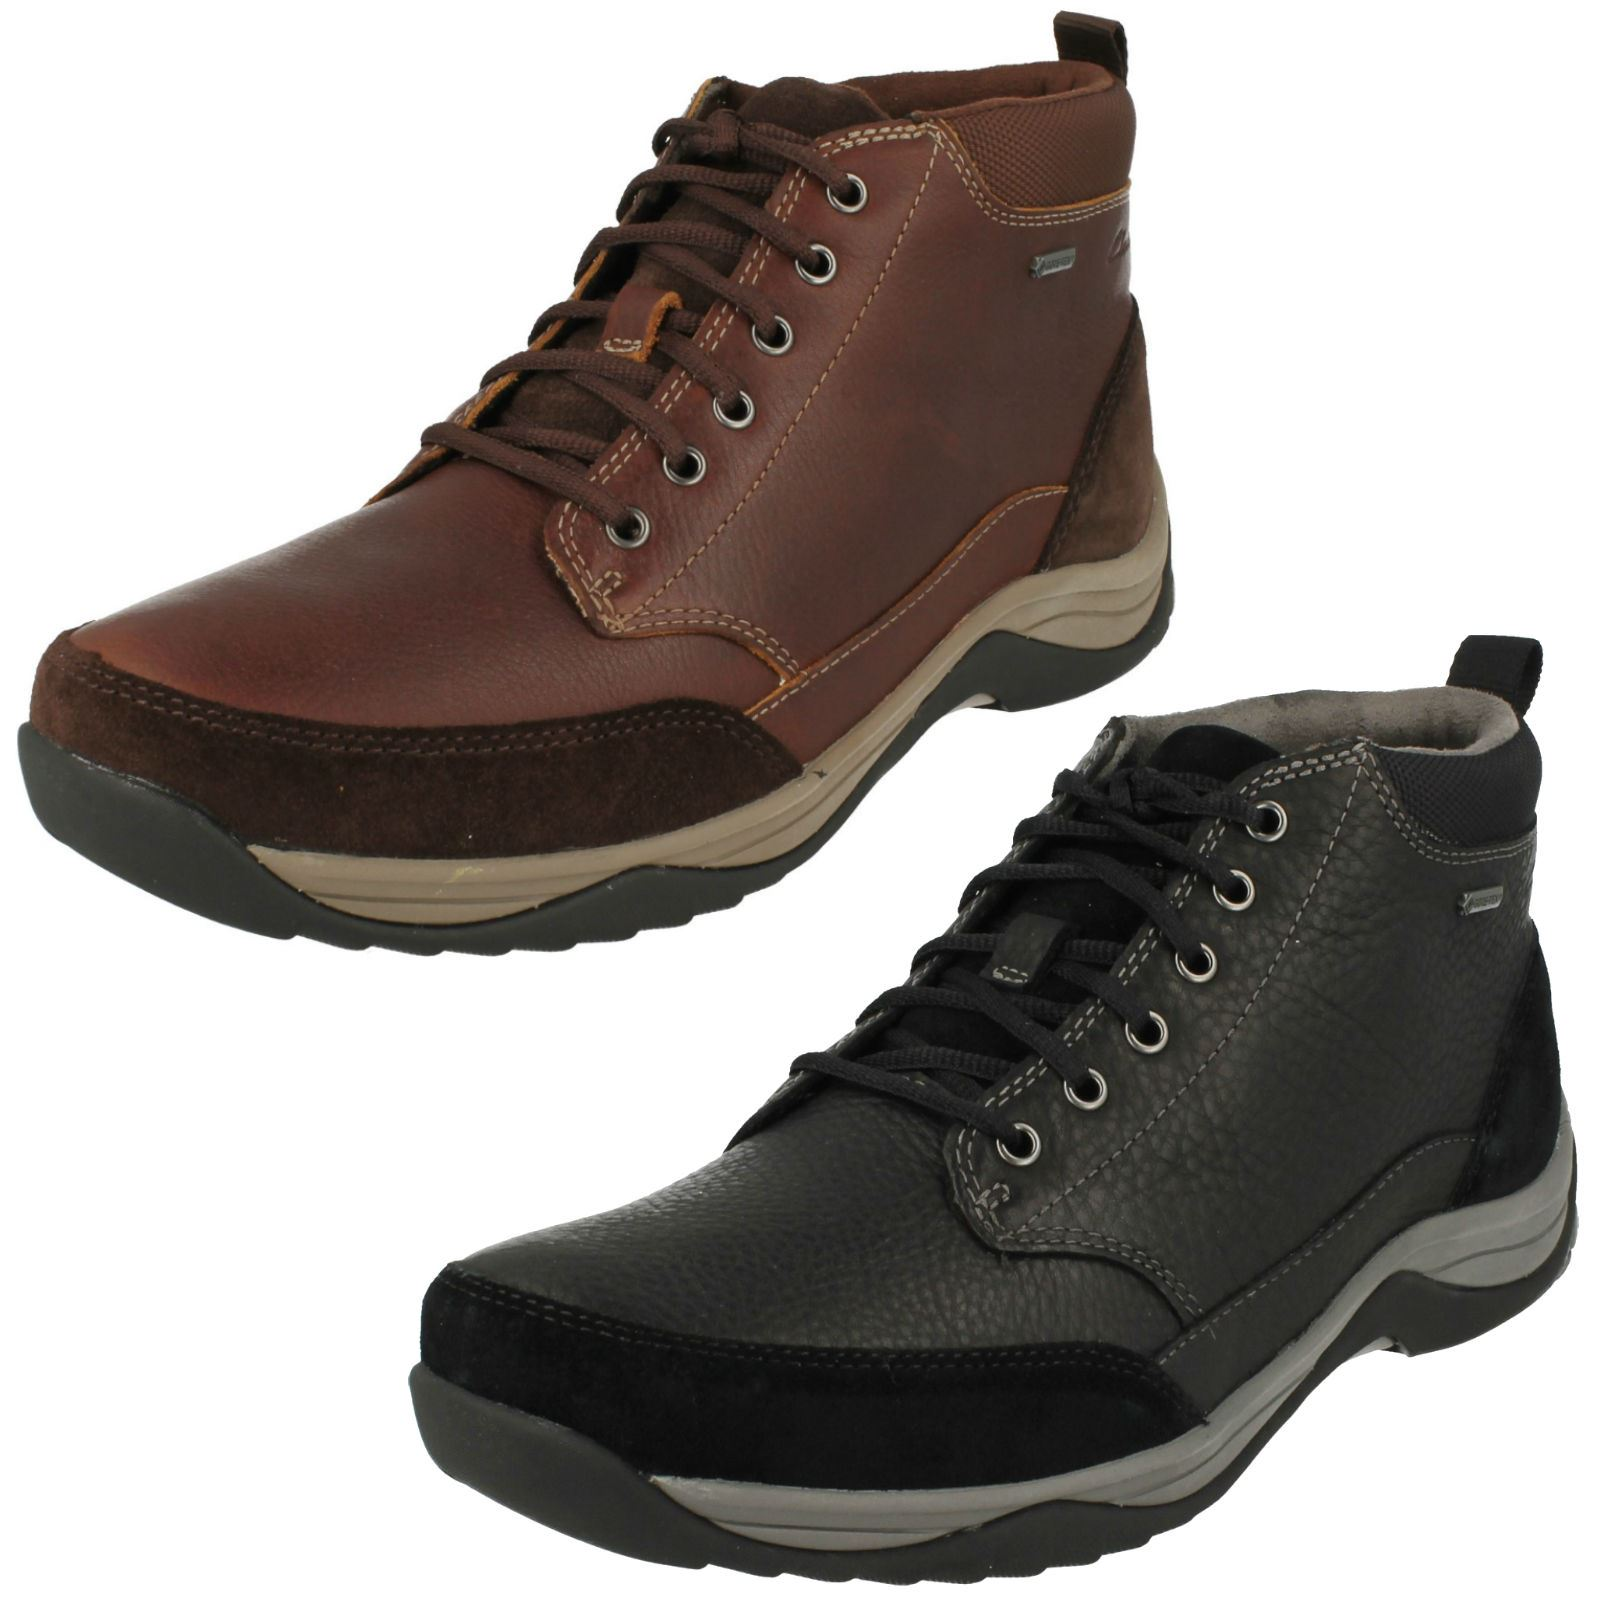 Details about Mens Clarks Goretex Leather Waterproof Lace Up Boots Baystone Top GTX